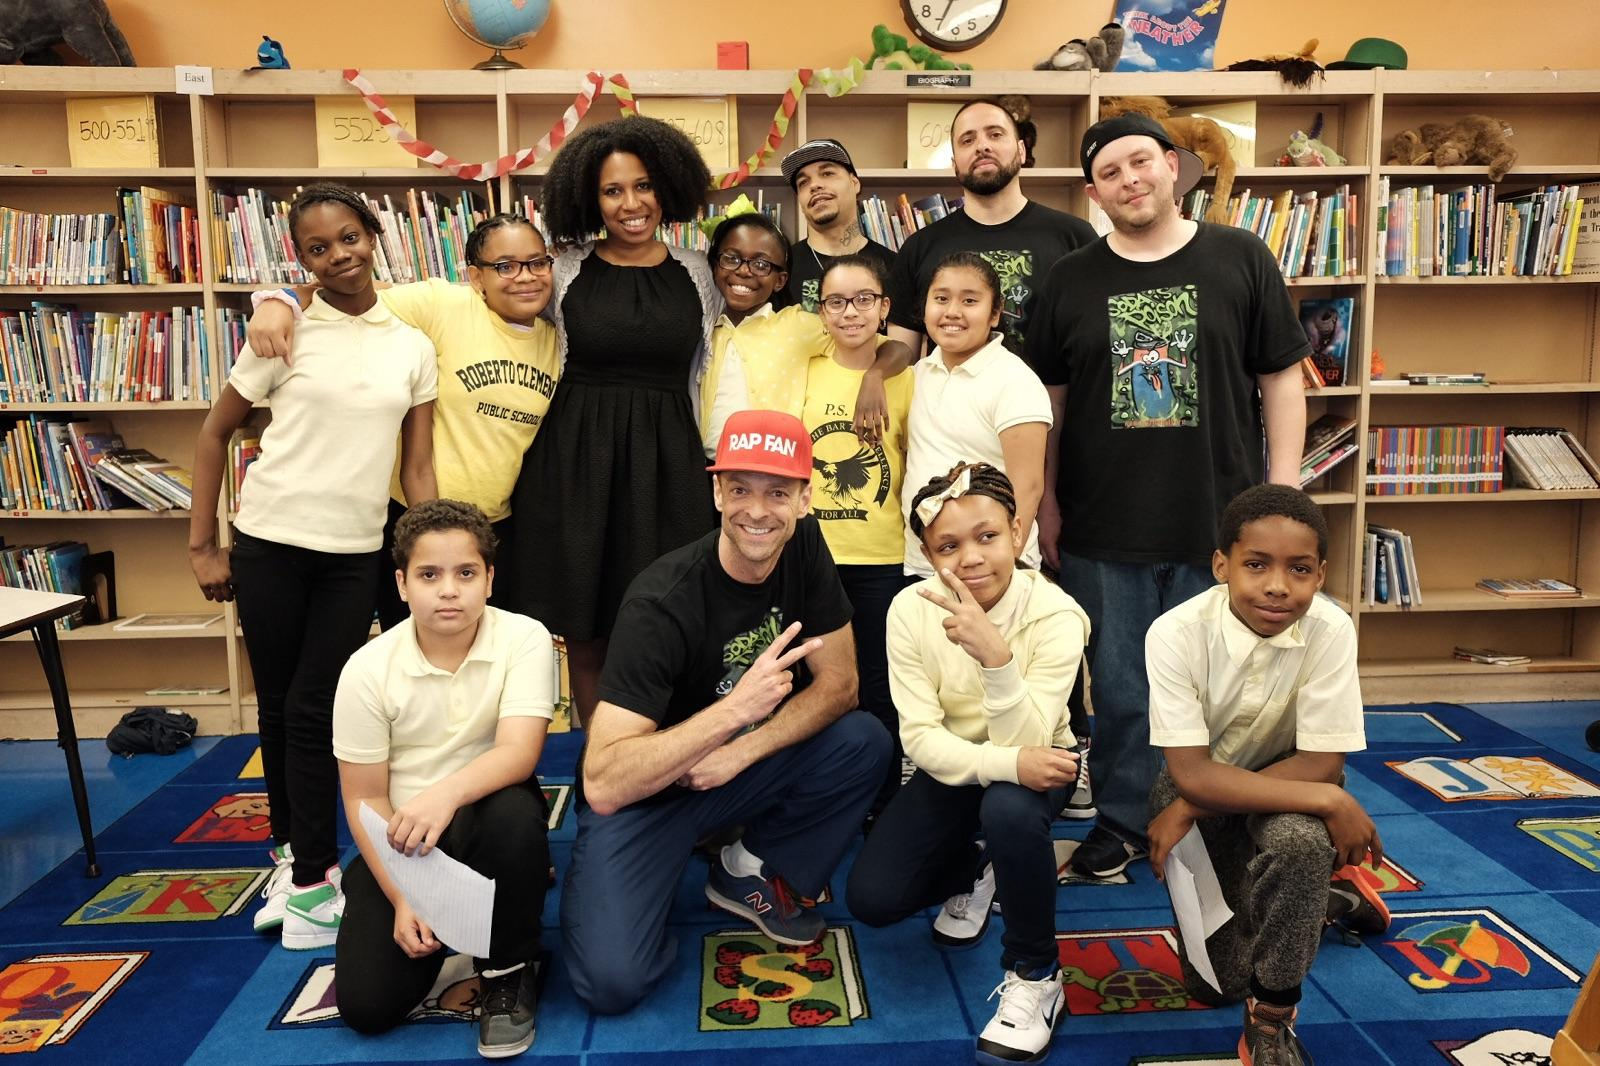 Dr. Kevin Strong with Operation: #DEFEATSODATRON in collaboration with NYC Health Department. Pictured here with Dr. Aletha Maybank, Deputy Commissioner, NYC Dept of Health and Mental Hygiene and Founding Director of the Center for Health Equity with students at PS 13 and Dunk the Junk rappers, Jay Caron and Mike Be.